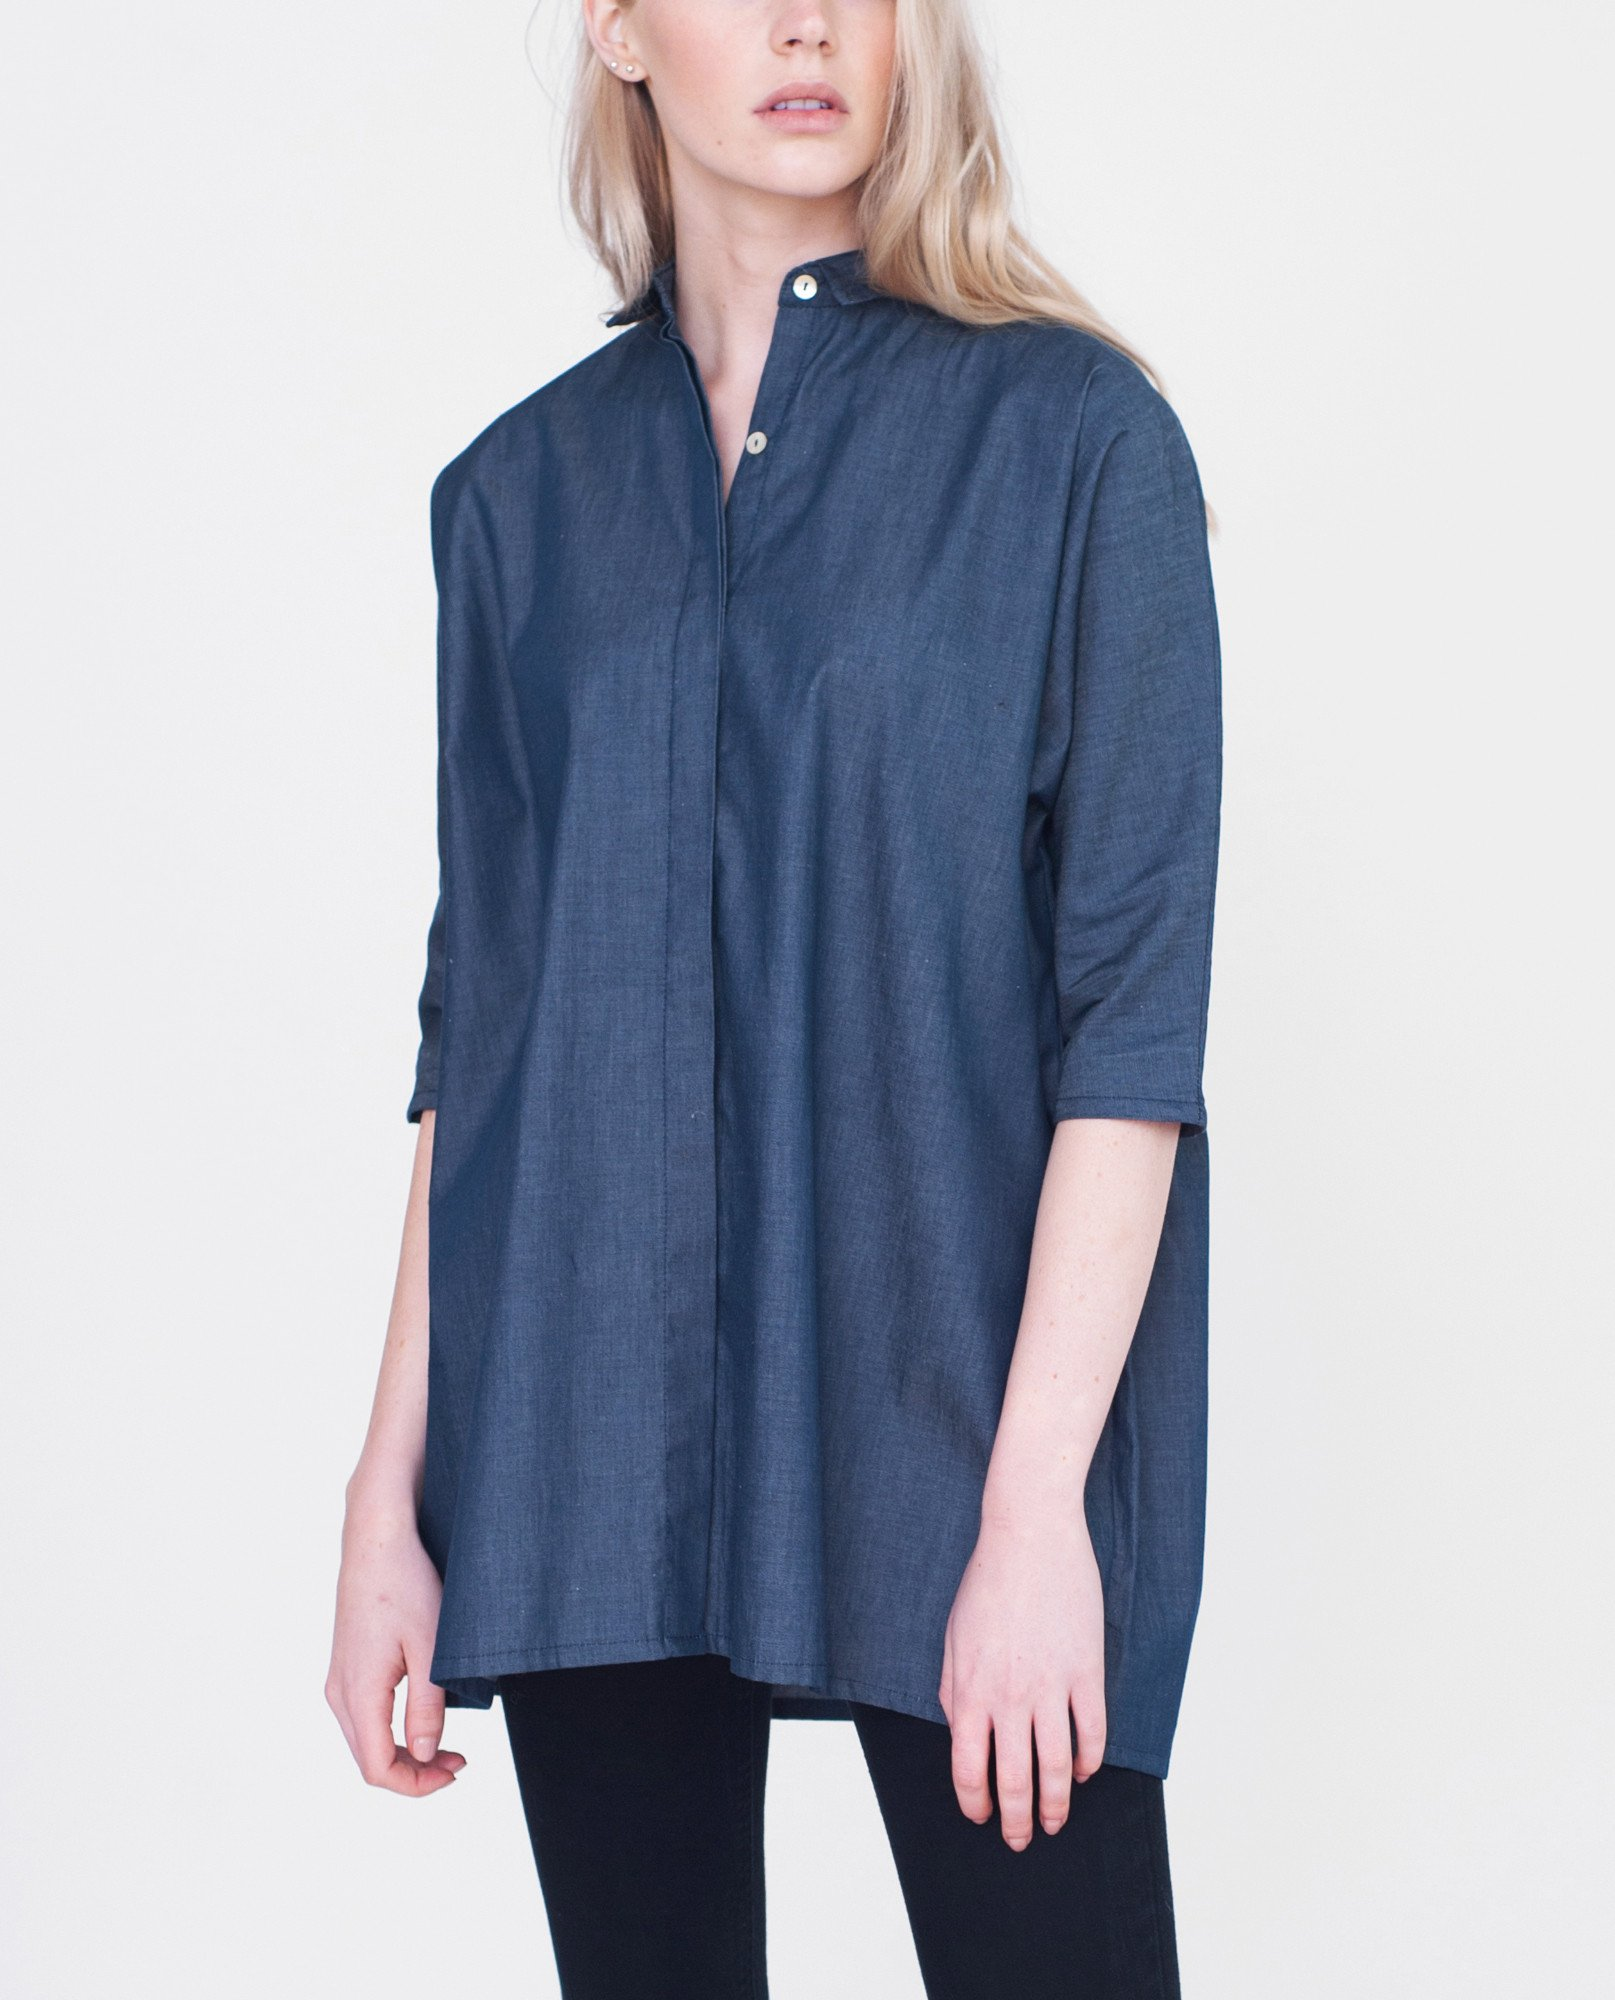 BLAINE Cotton Denim Shirt from Beaumont Organic